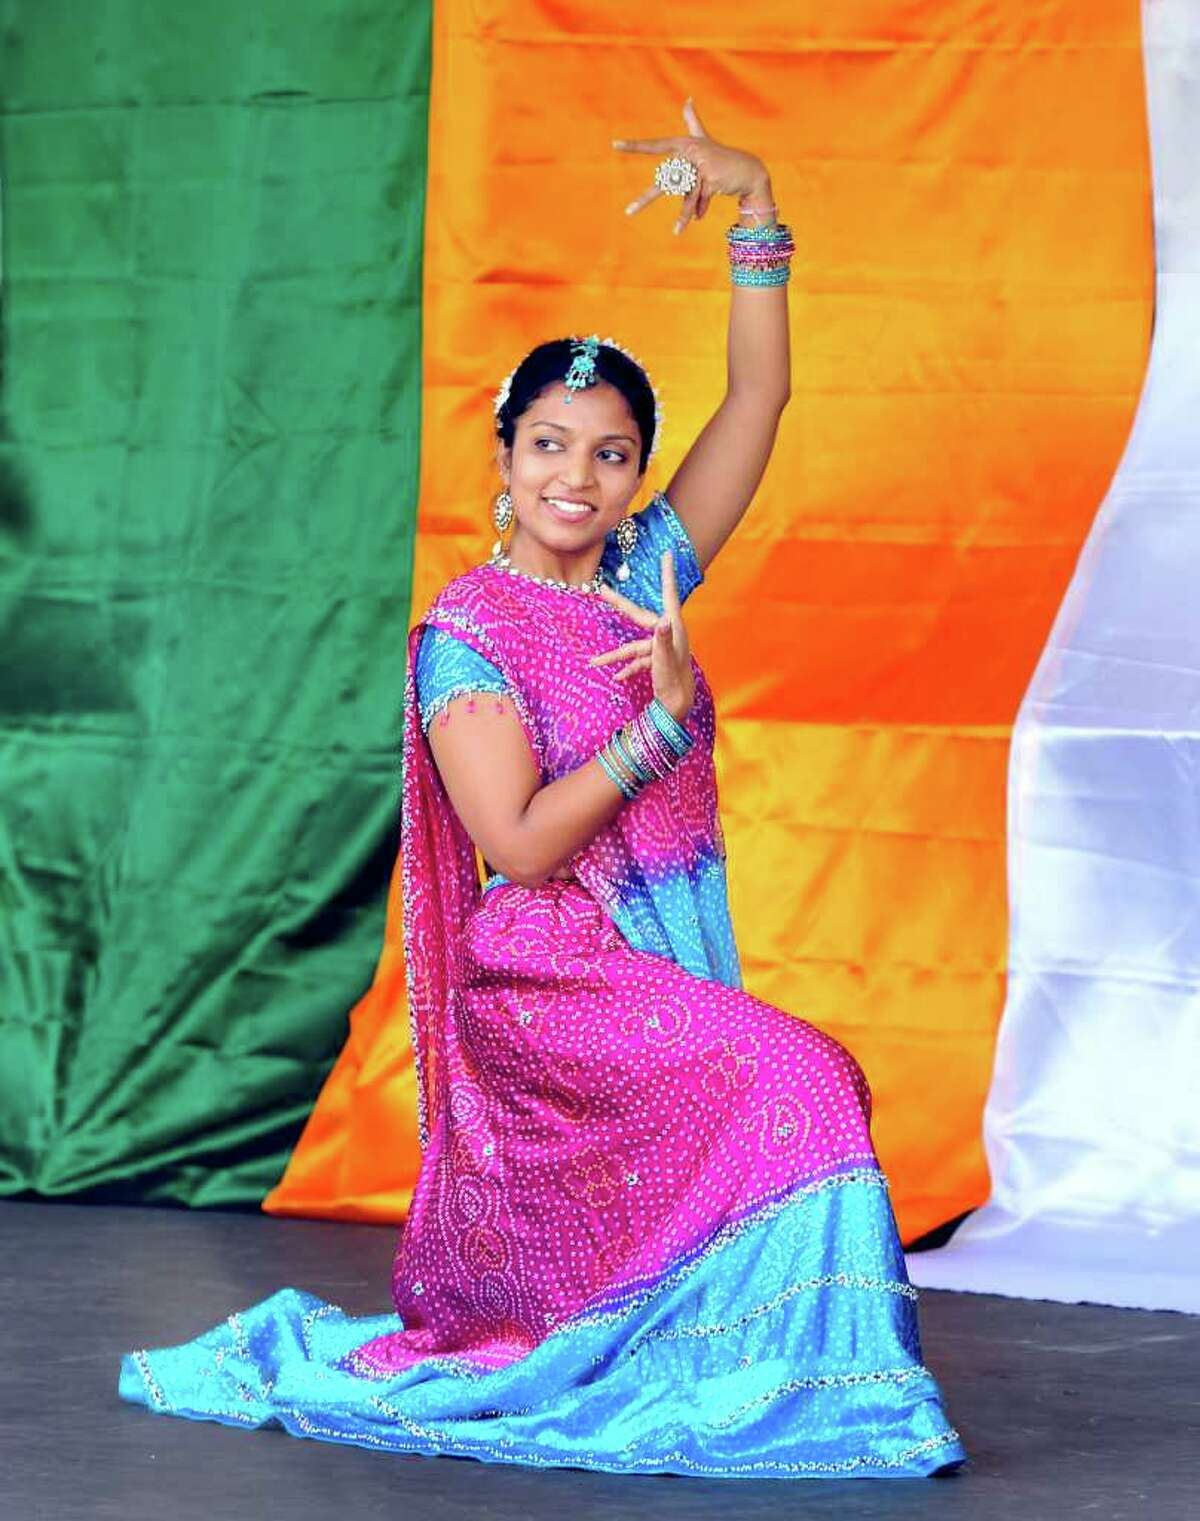 Megha Gupta, 25, of Danbury, performs during the Jai Ho Festival sponsored by the Indian Association of Western Connecticut, on the Danbury Green, Saturday, Aug. 14, 2010.